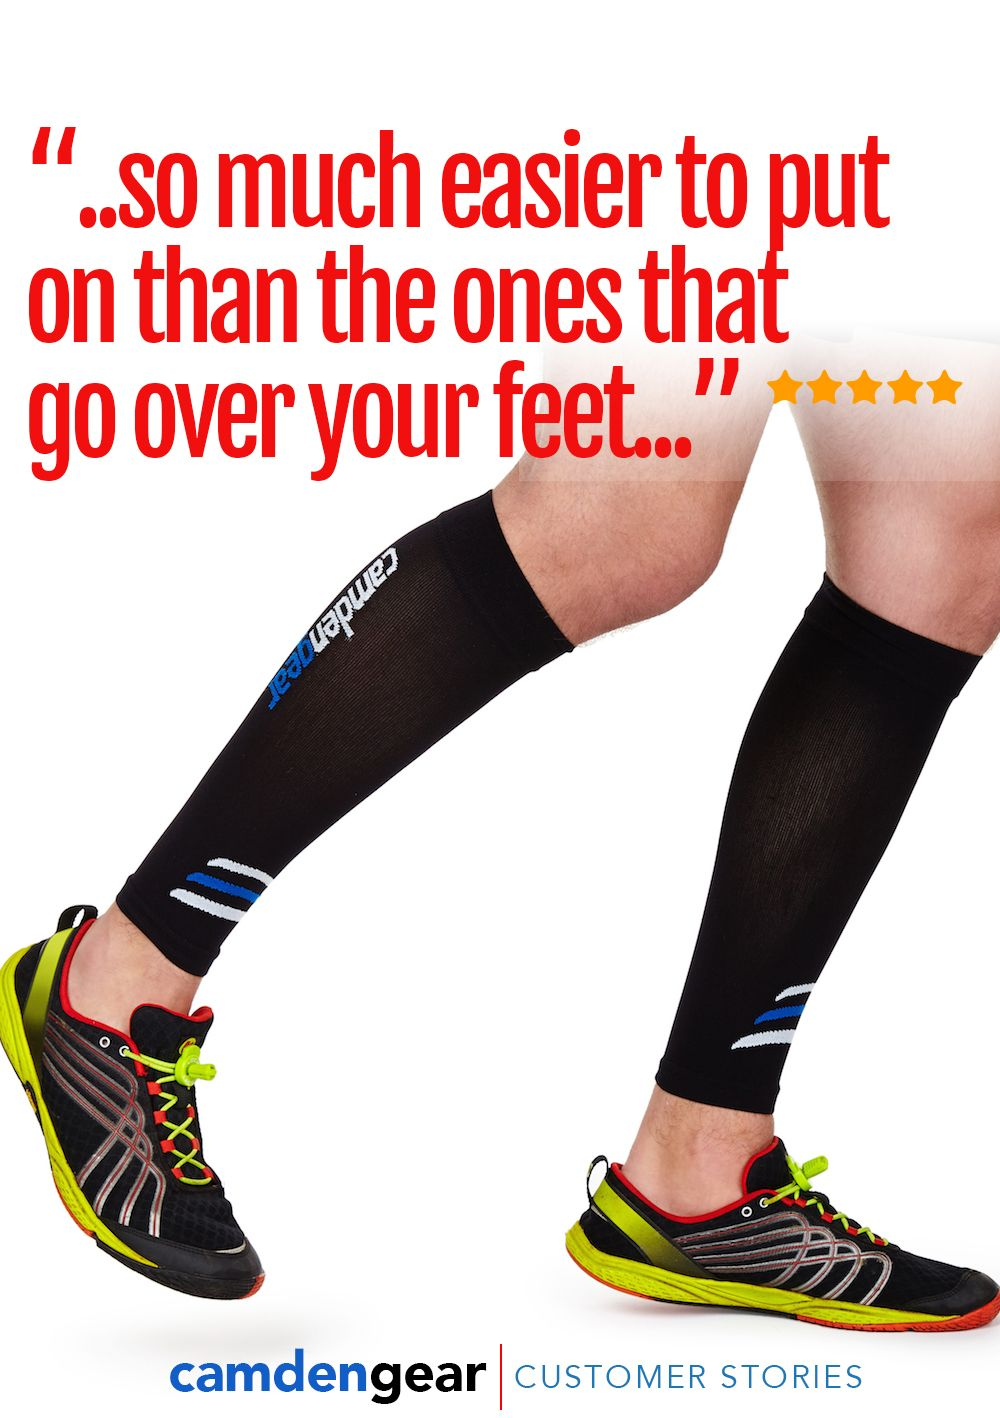 Camden Gear Calf Compression Sleeve for the Runners. These help you ...